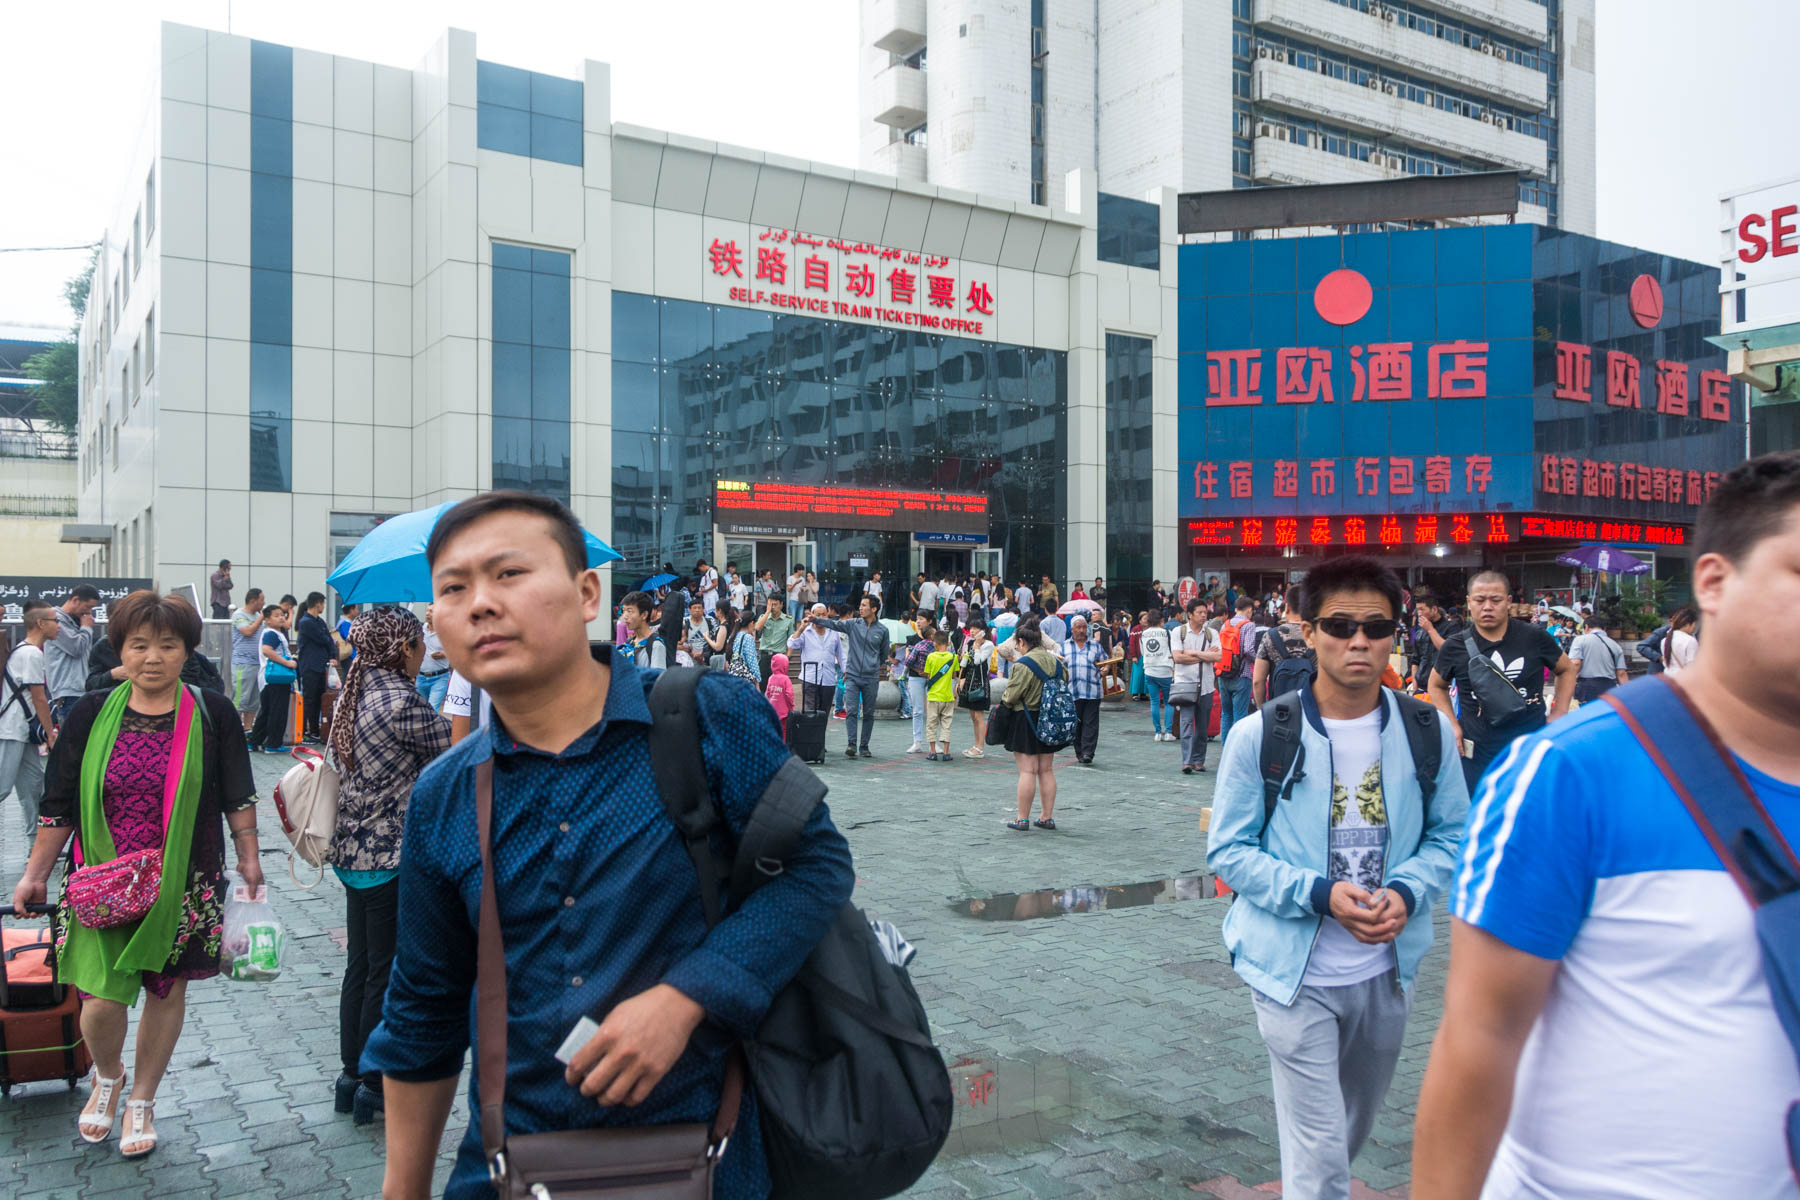 Why we didn't like traveling in Xinjiang, China: the billion and one security checkpoints.